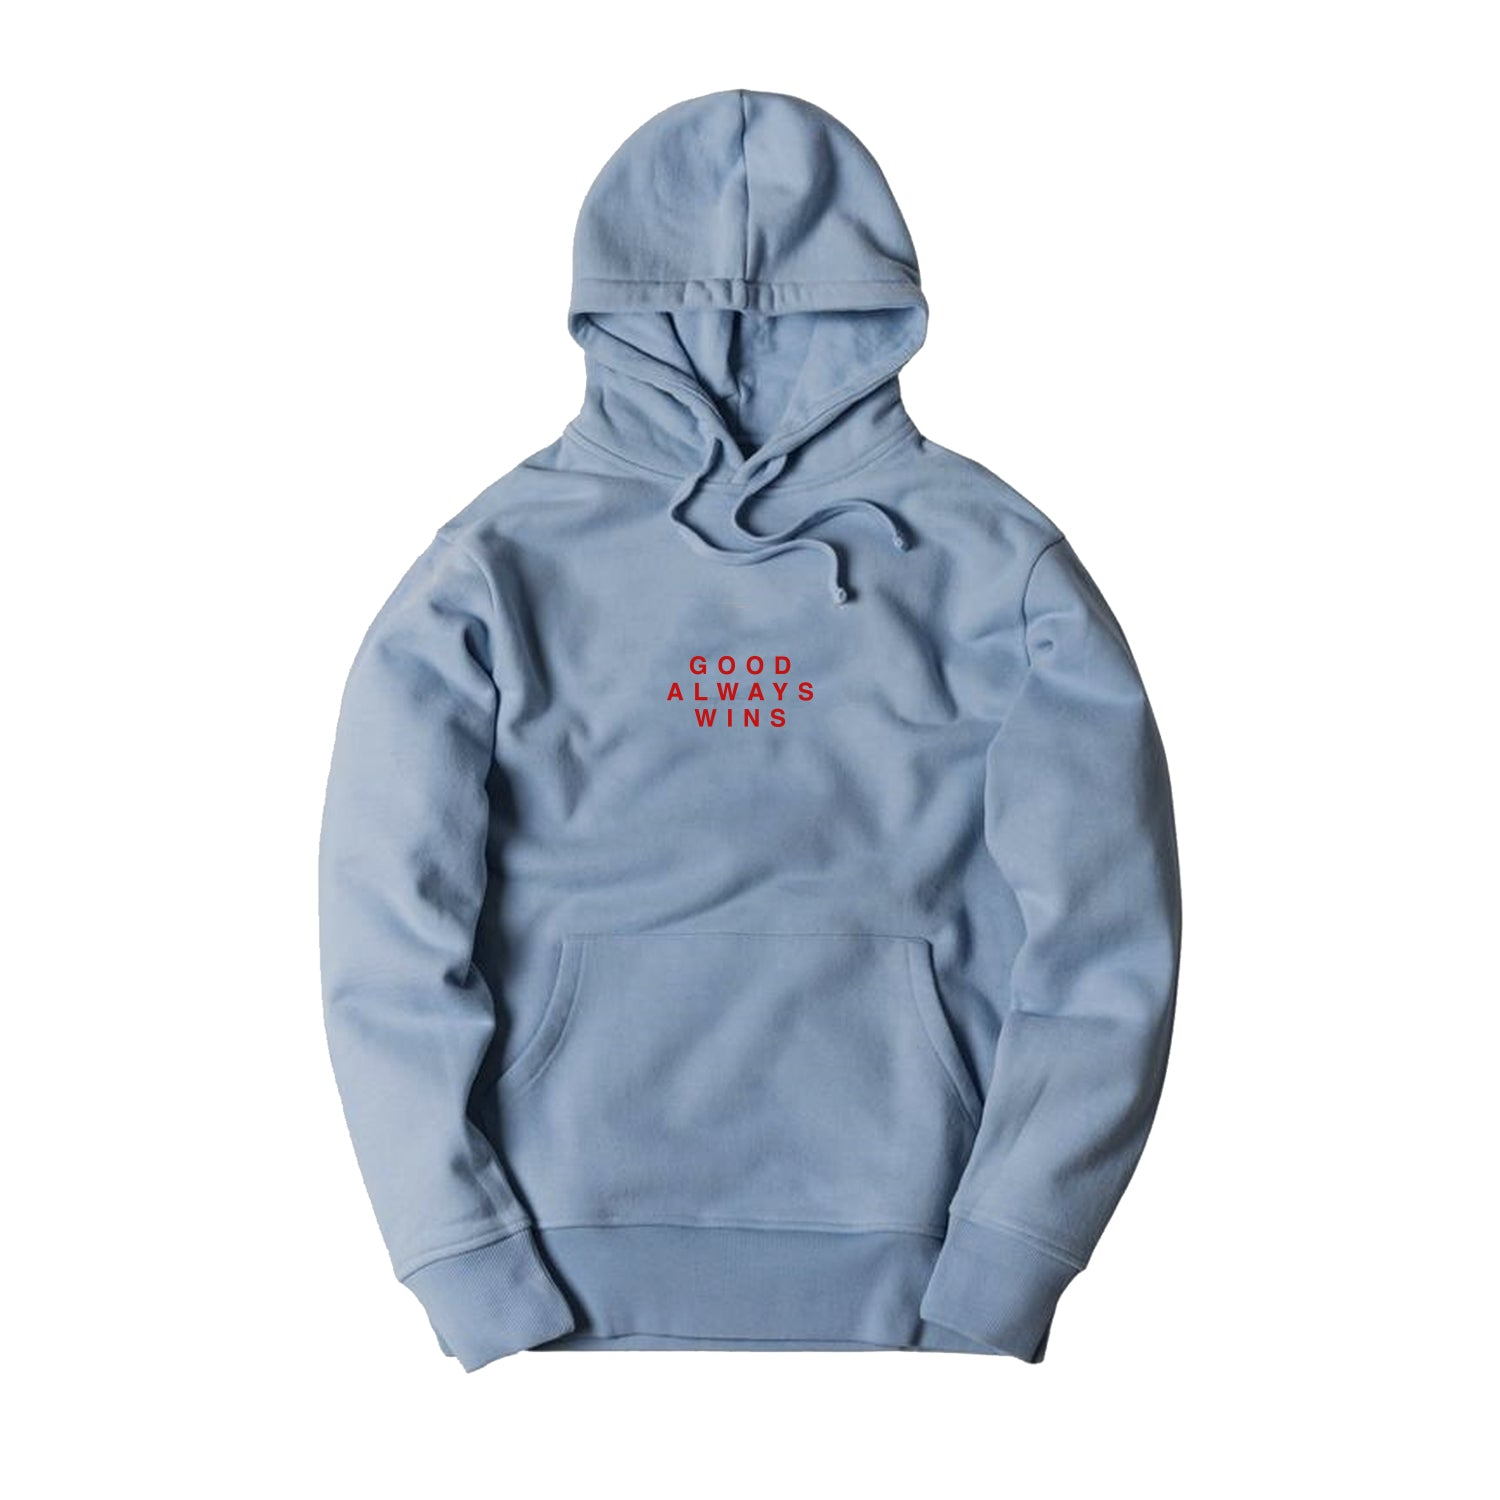 Good Always Wins Hoodie [Blue]